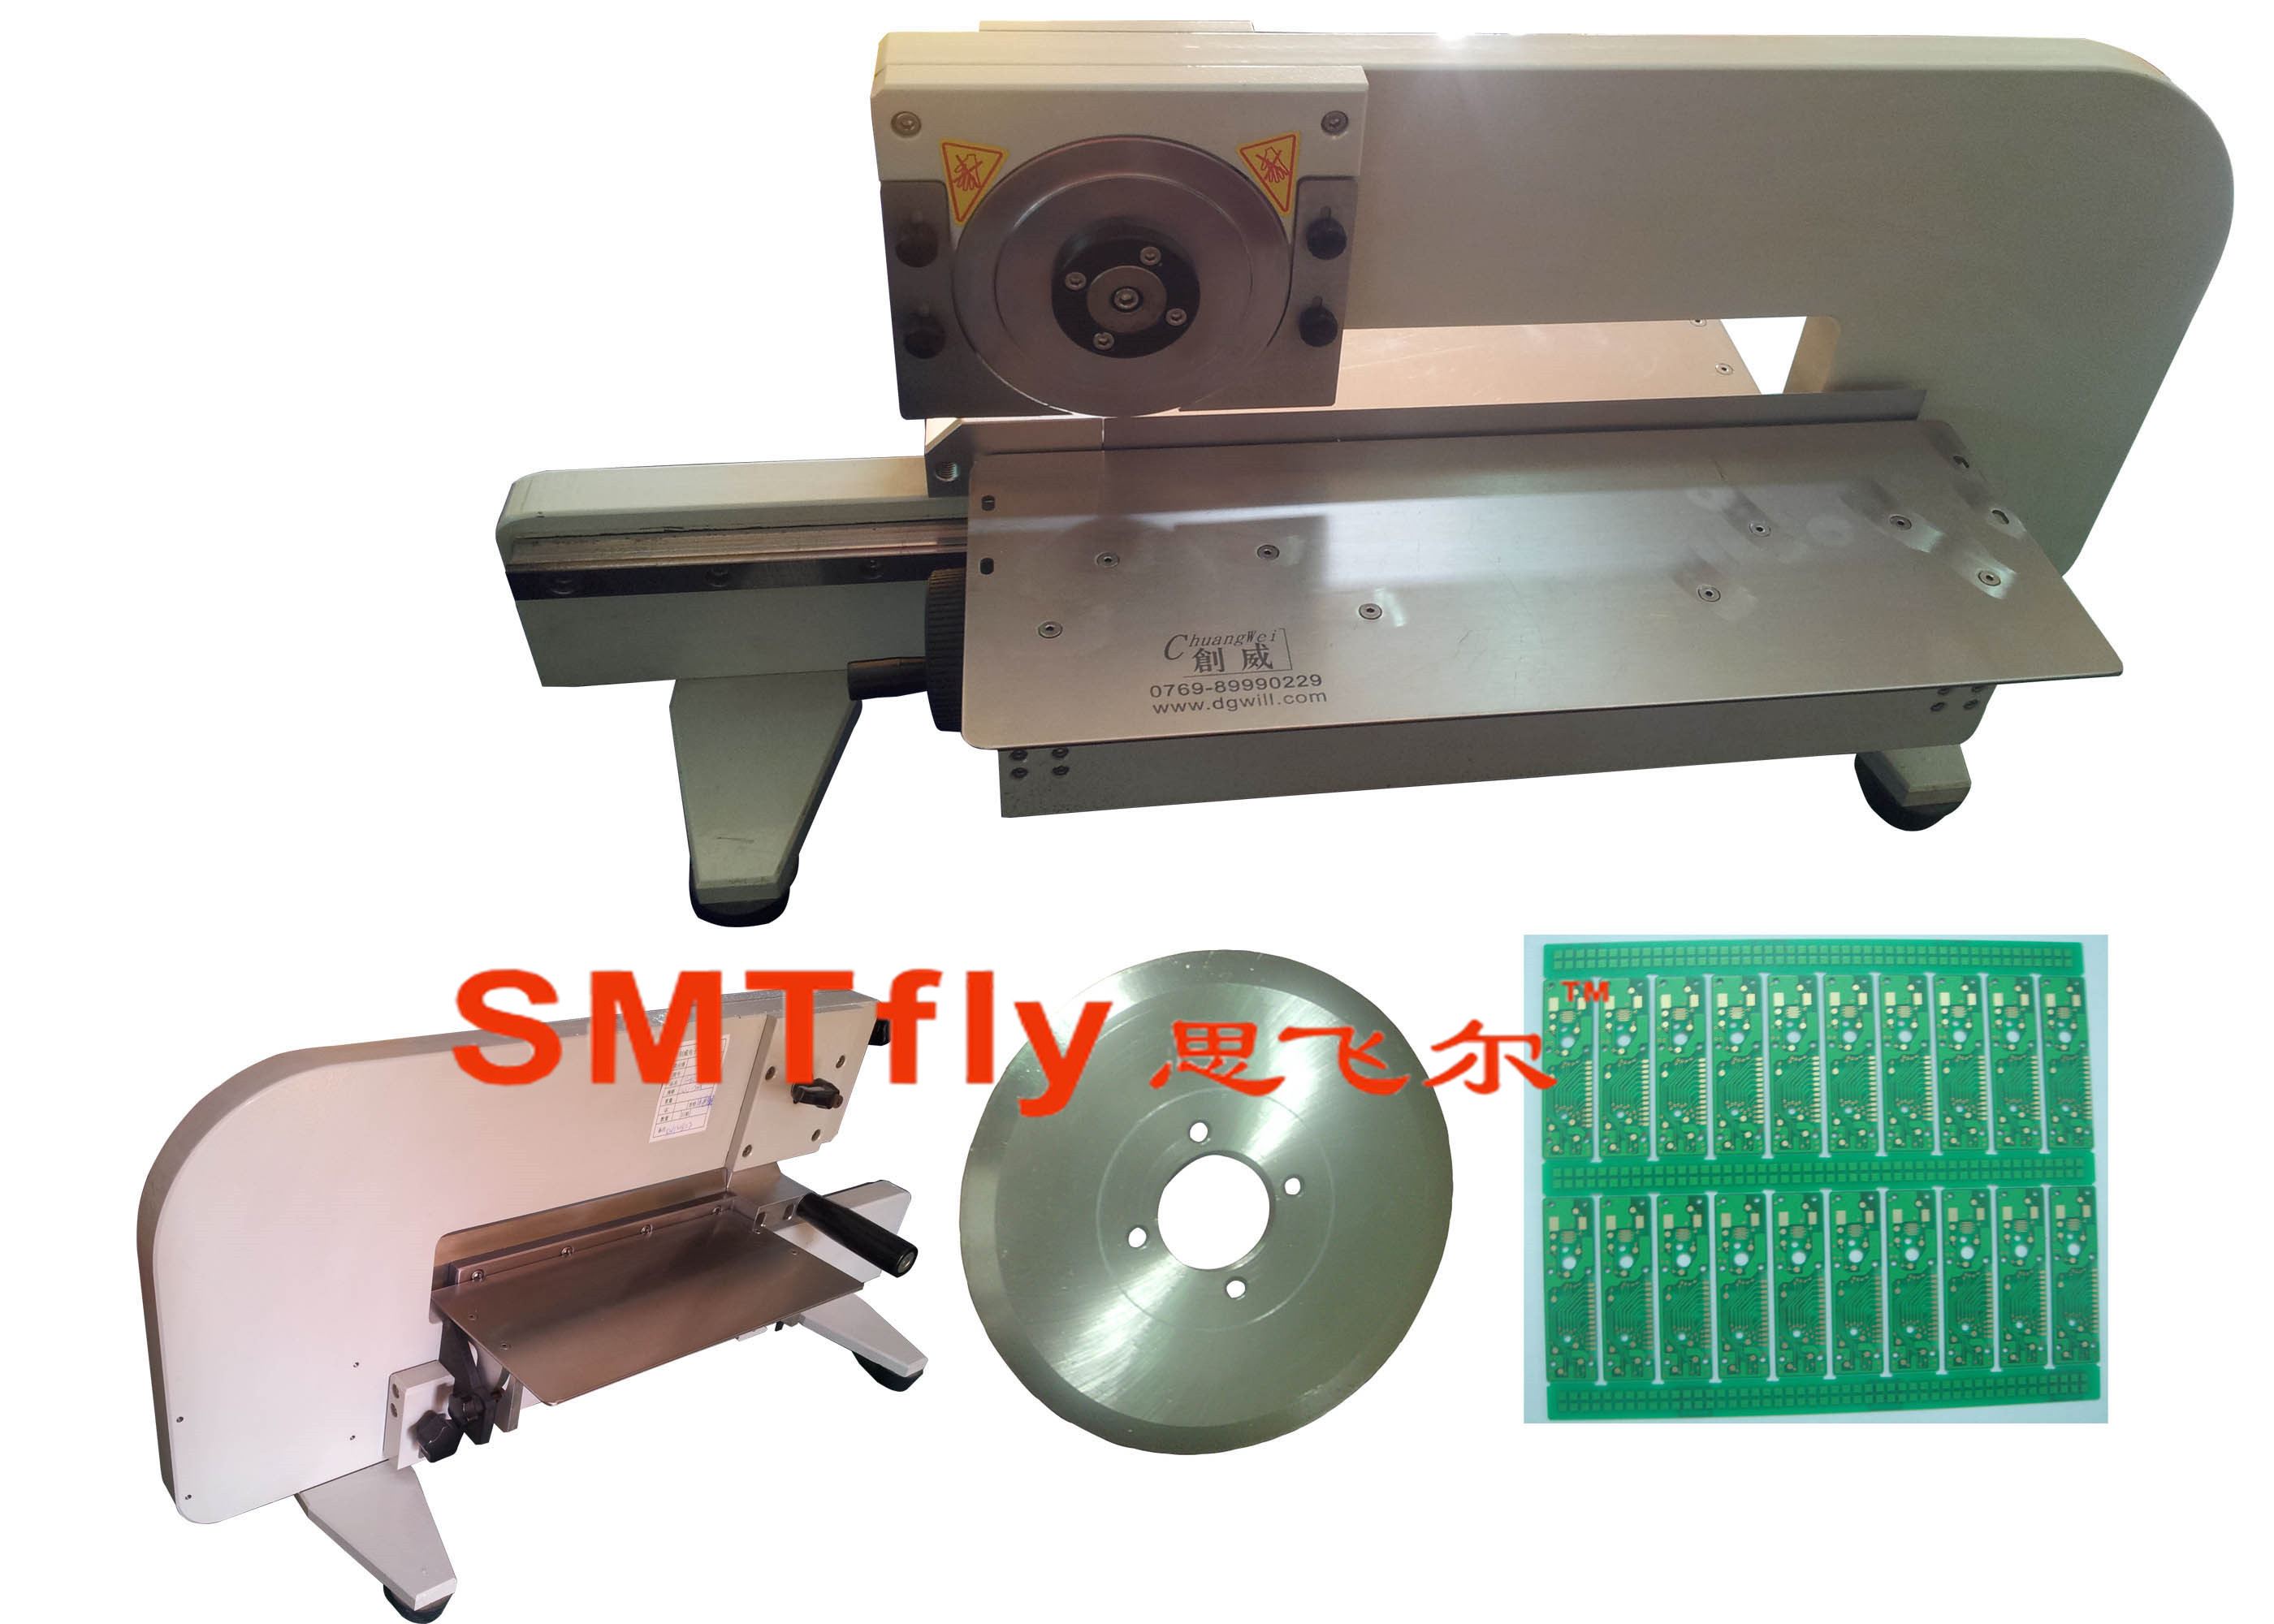 manual pcb board cutting machine,SMTfly-2M